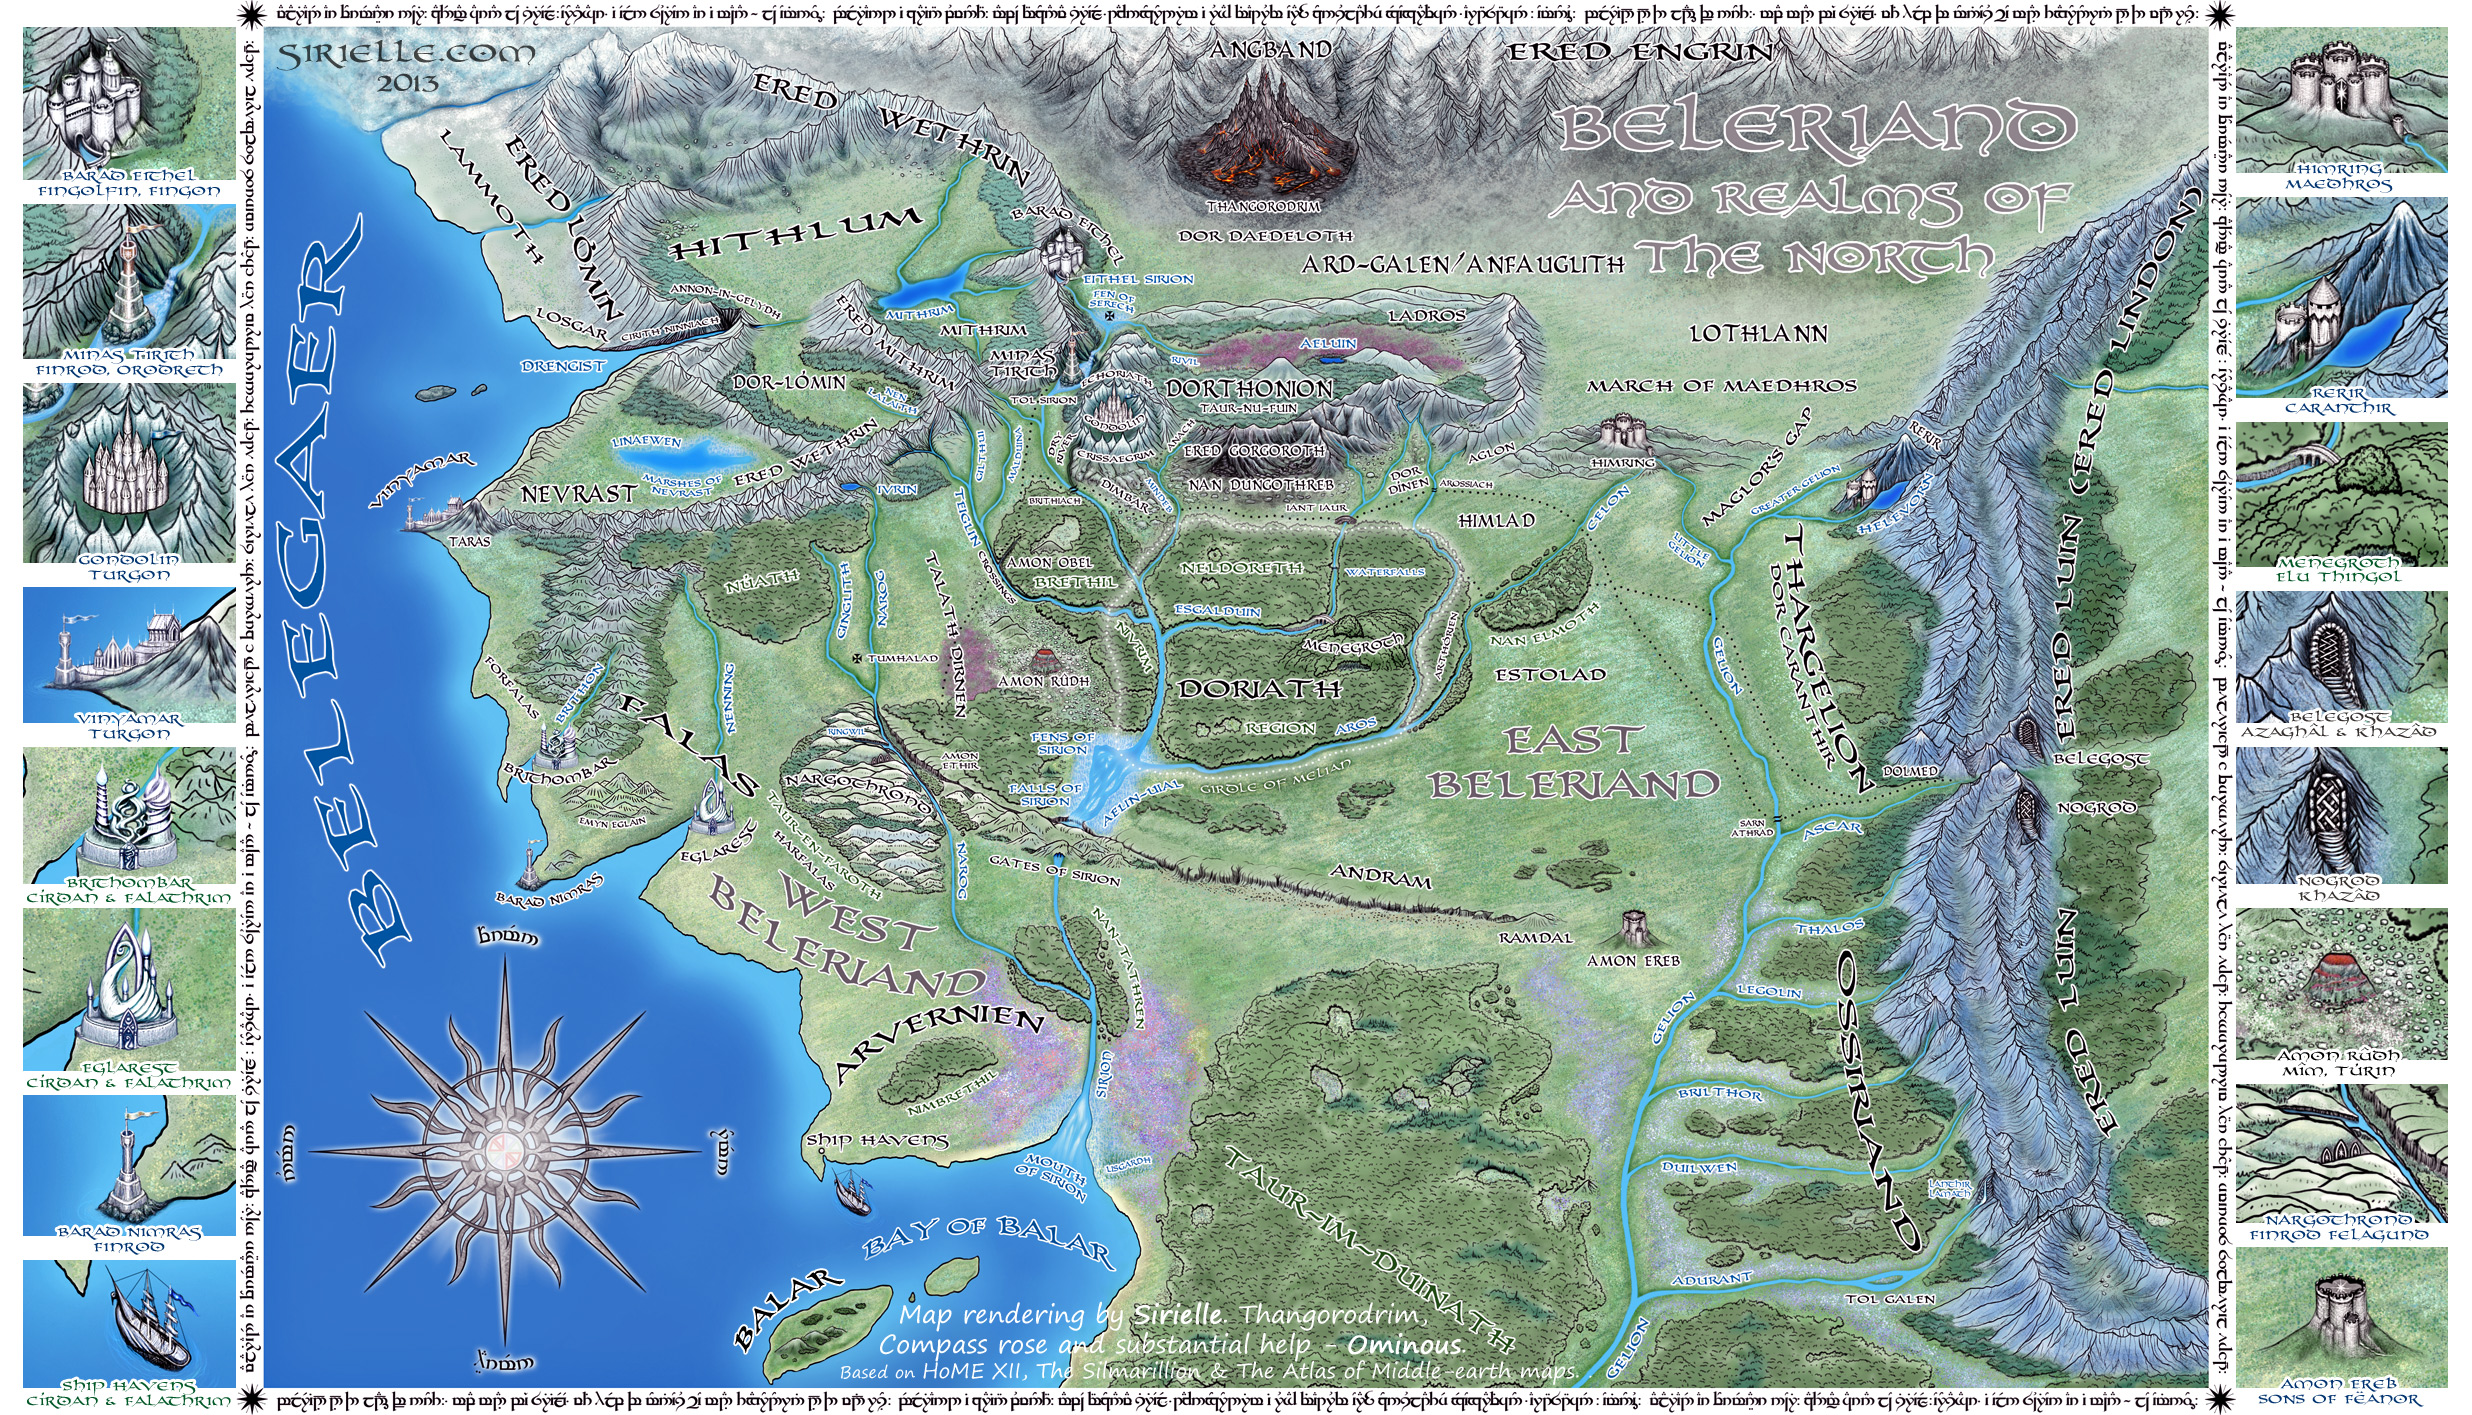 Maps of Arda etc. | 🧙 The Tolkien Forum 🧝 Map Of Arda on map of numenor, map of forodwaith, map of rohan, map of undying lands tolkien, map of umbar, map of narnia, map of valinor, map of angmar, map of the undying lands, map of marsala, map of angband, map of aman, map of the shire, map of beleriand, map of eriador, map of elena, map of mordor, map of gondor, map of grande river, map of arnor,